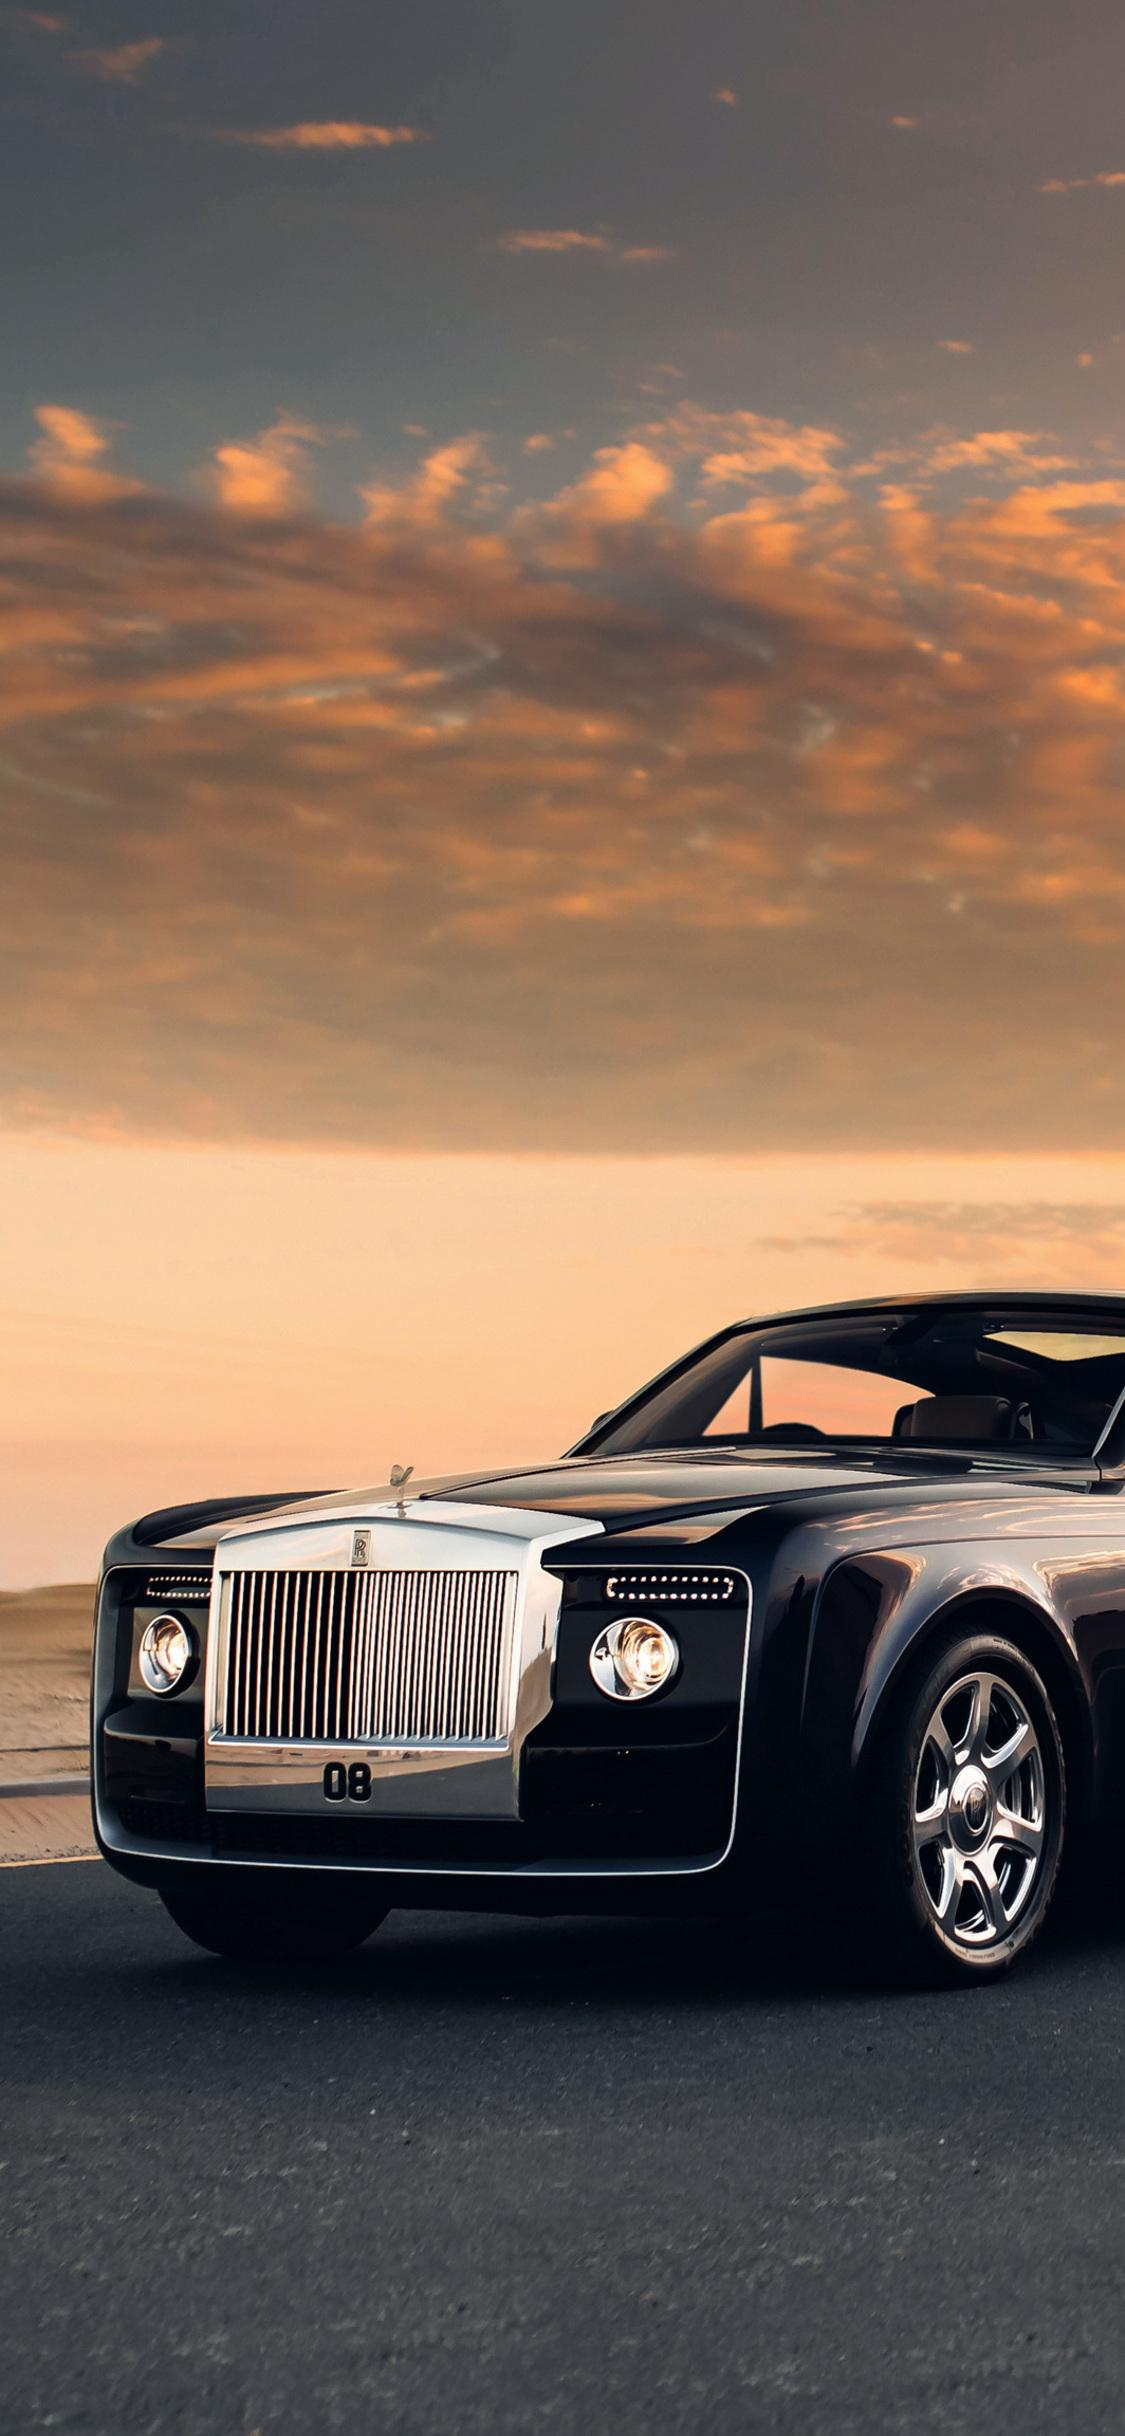 Rolls Royce Car Iphone Wallpapers Wallpaper Cave